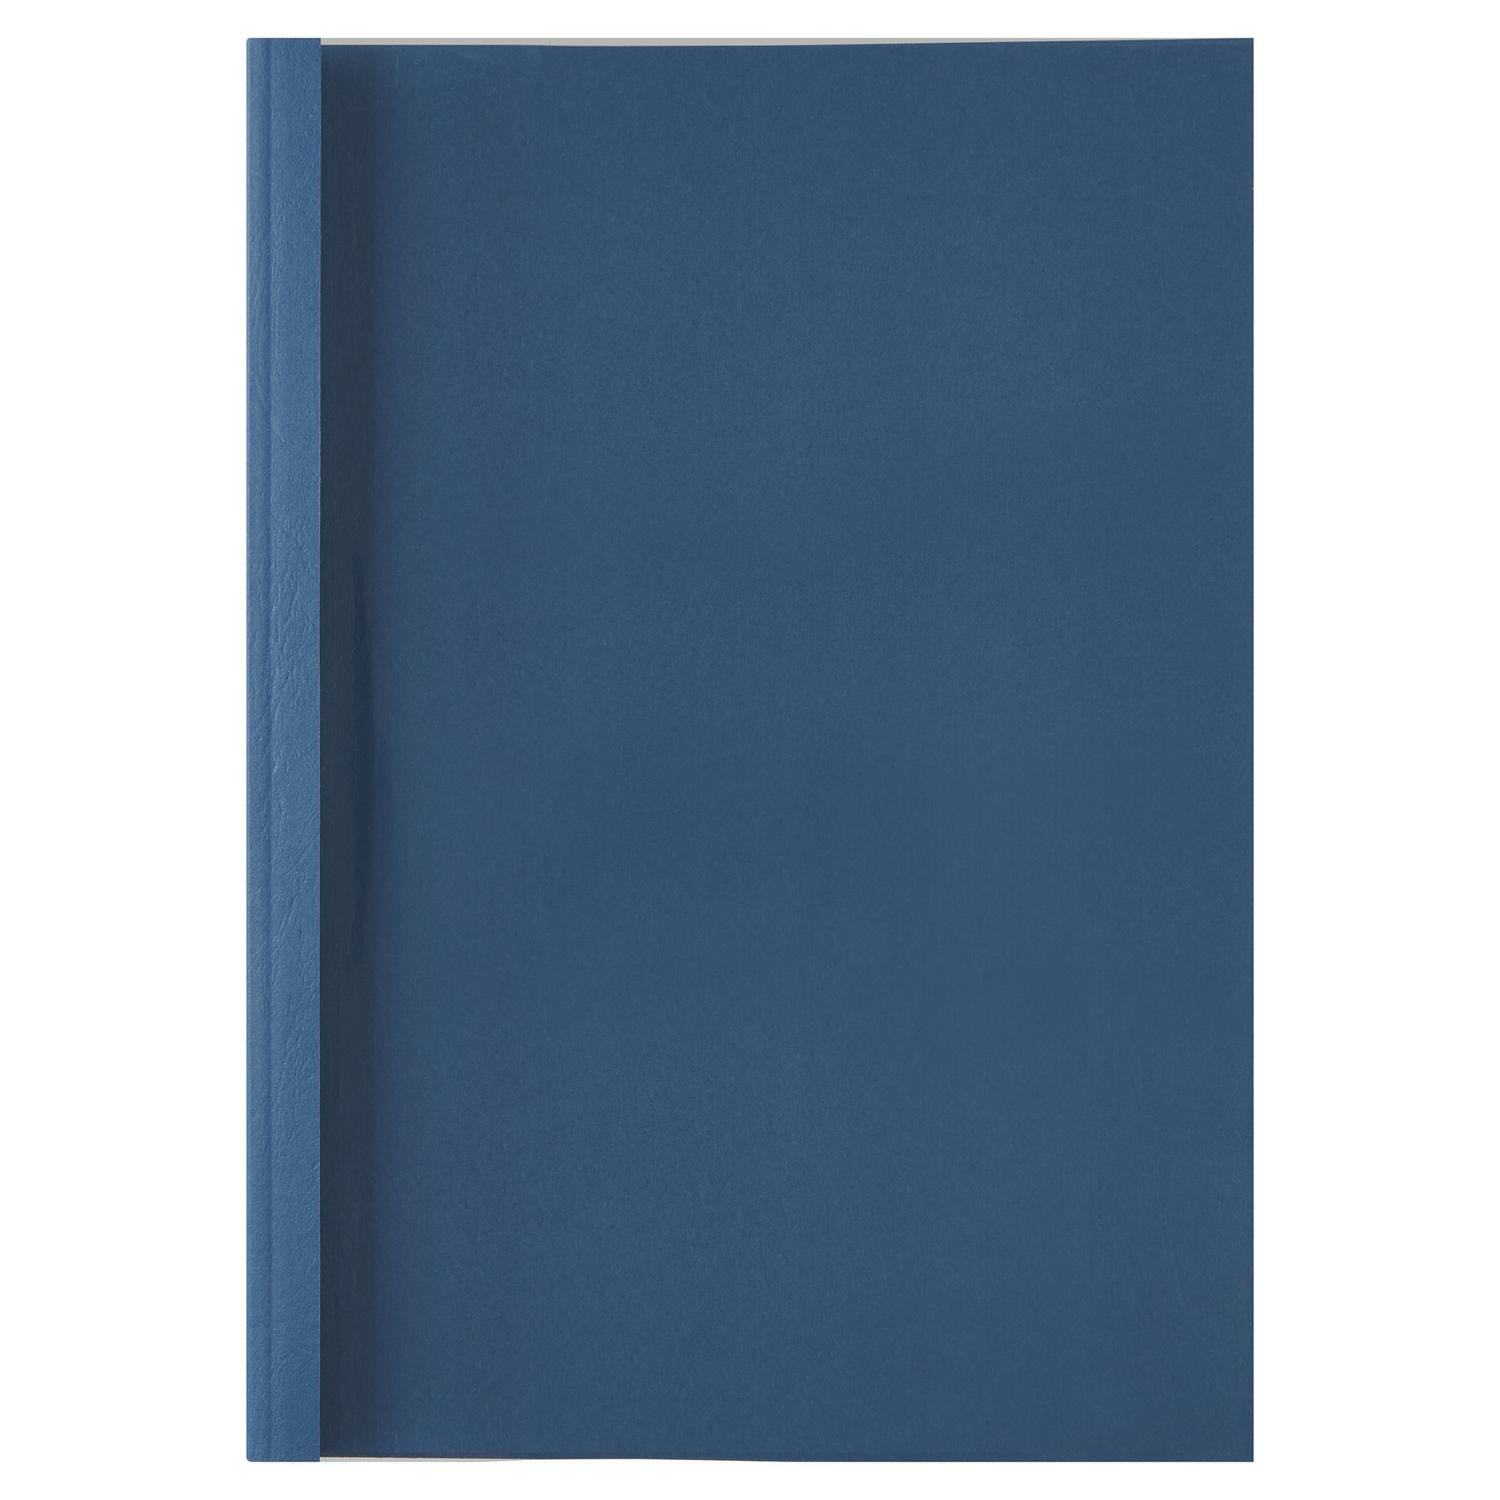 GBC A4 Thermal Binding Covers 4mm Royal Blue PK100